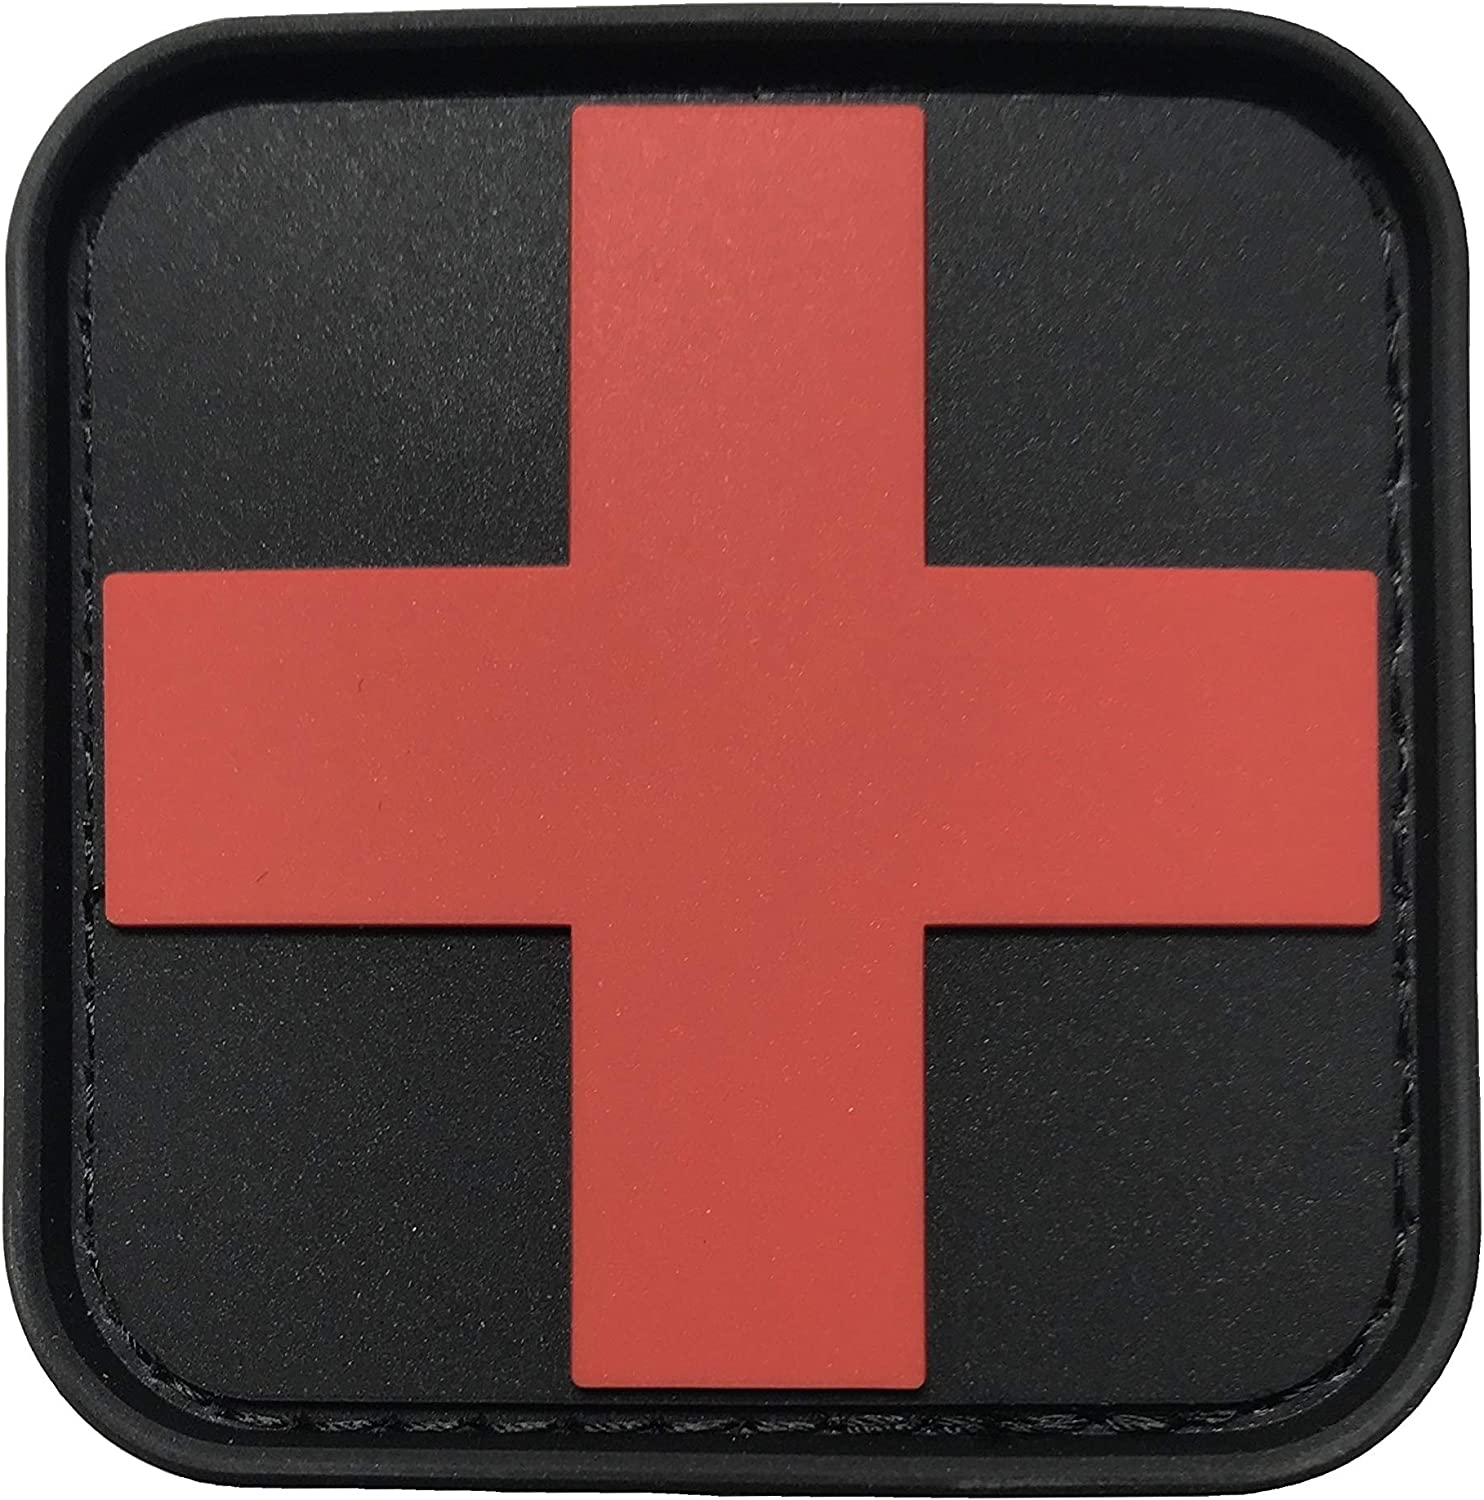 2x First Aid Sticker 10x10cm with protective laminate Accident Protection Dressing Box